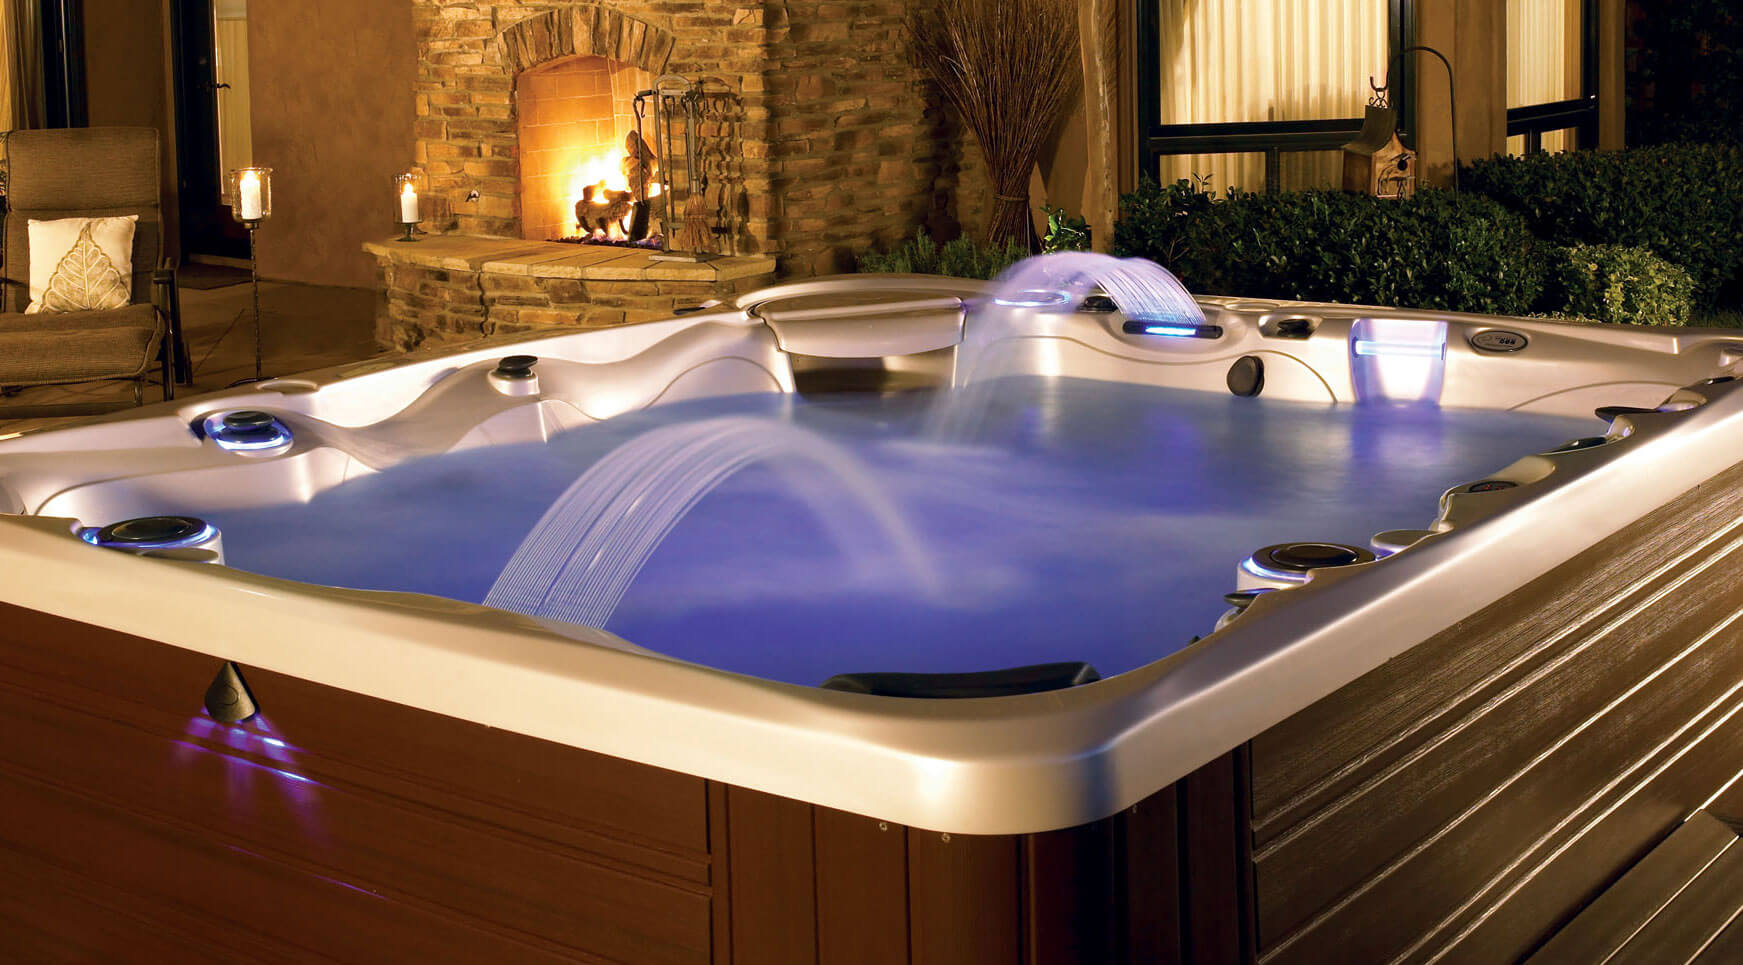 6 person hot tub geneva caldera spas scotland